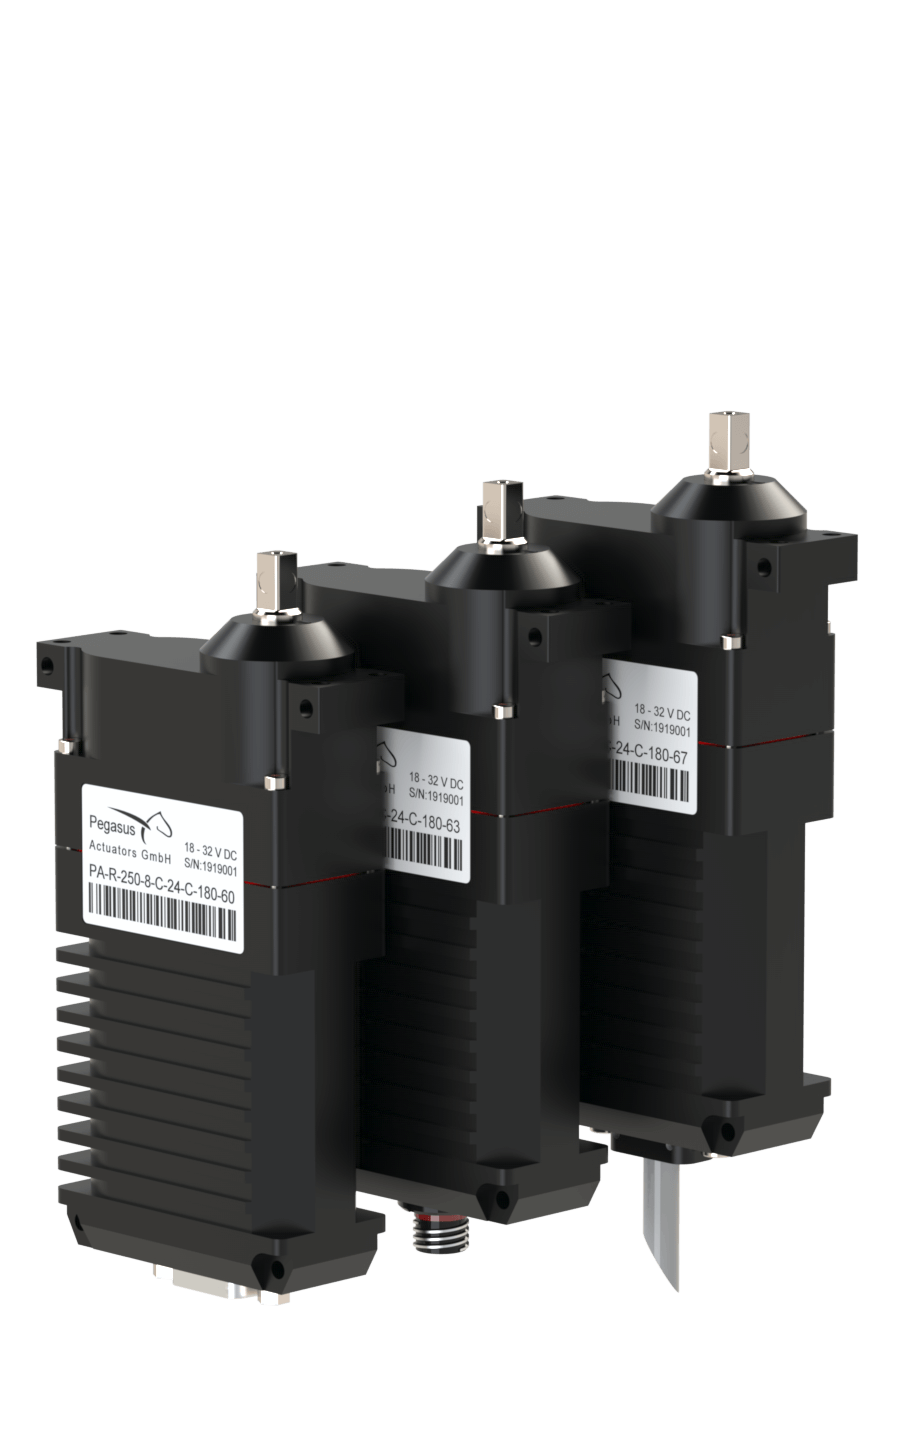 PA-R-250-8 Industrial Actuators